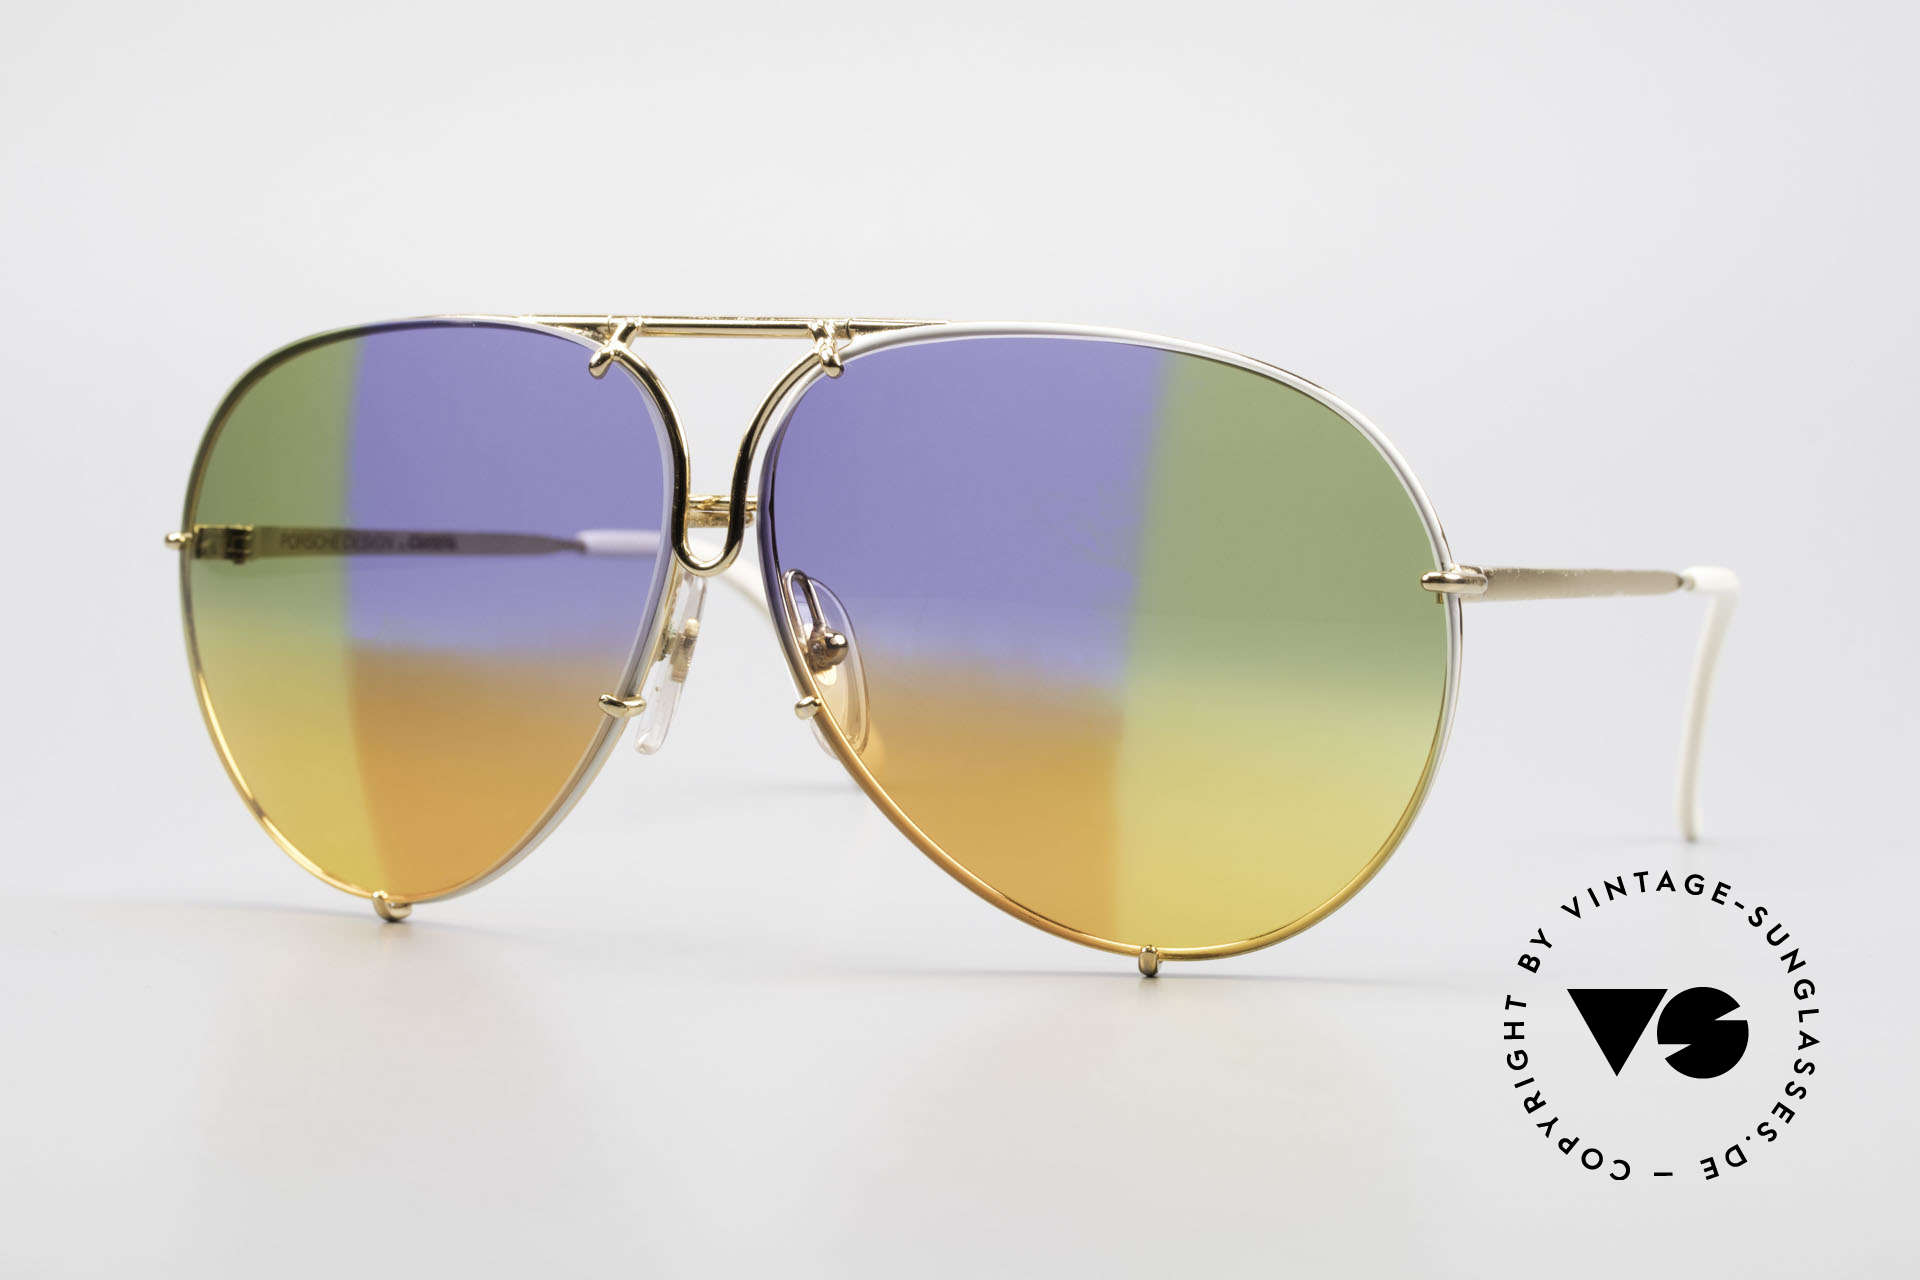 Porsche 5623 One Of A Kind Collector's Item, vintage Porsche Design by Carrera shades from 1987, Made for Men and Women